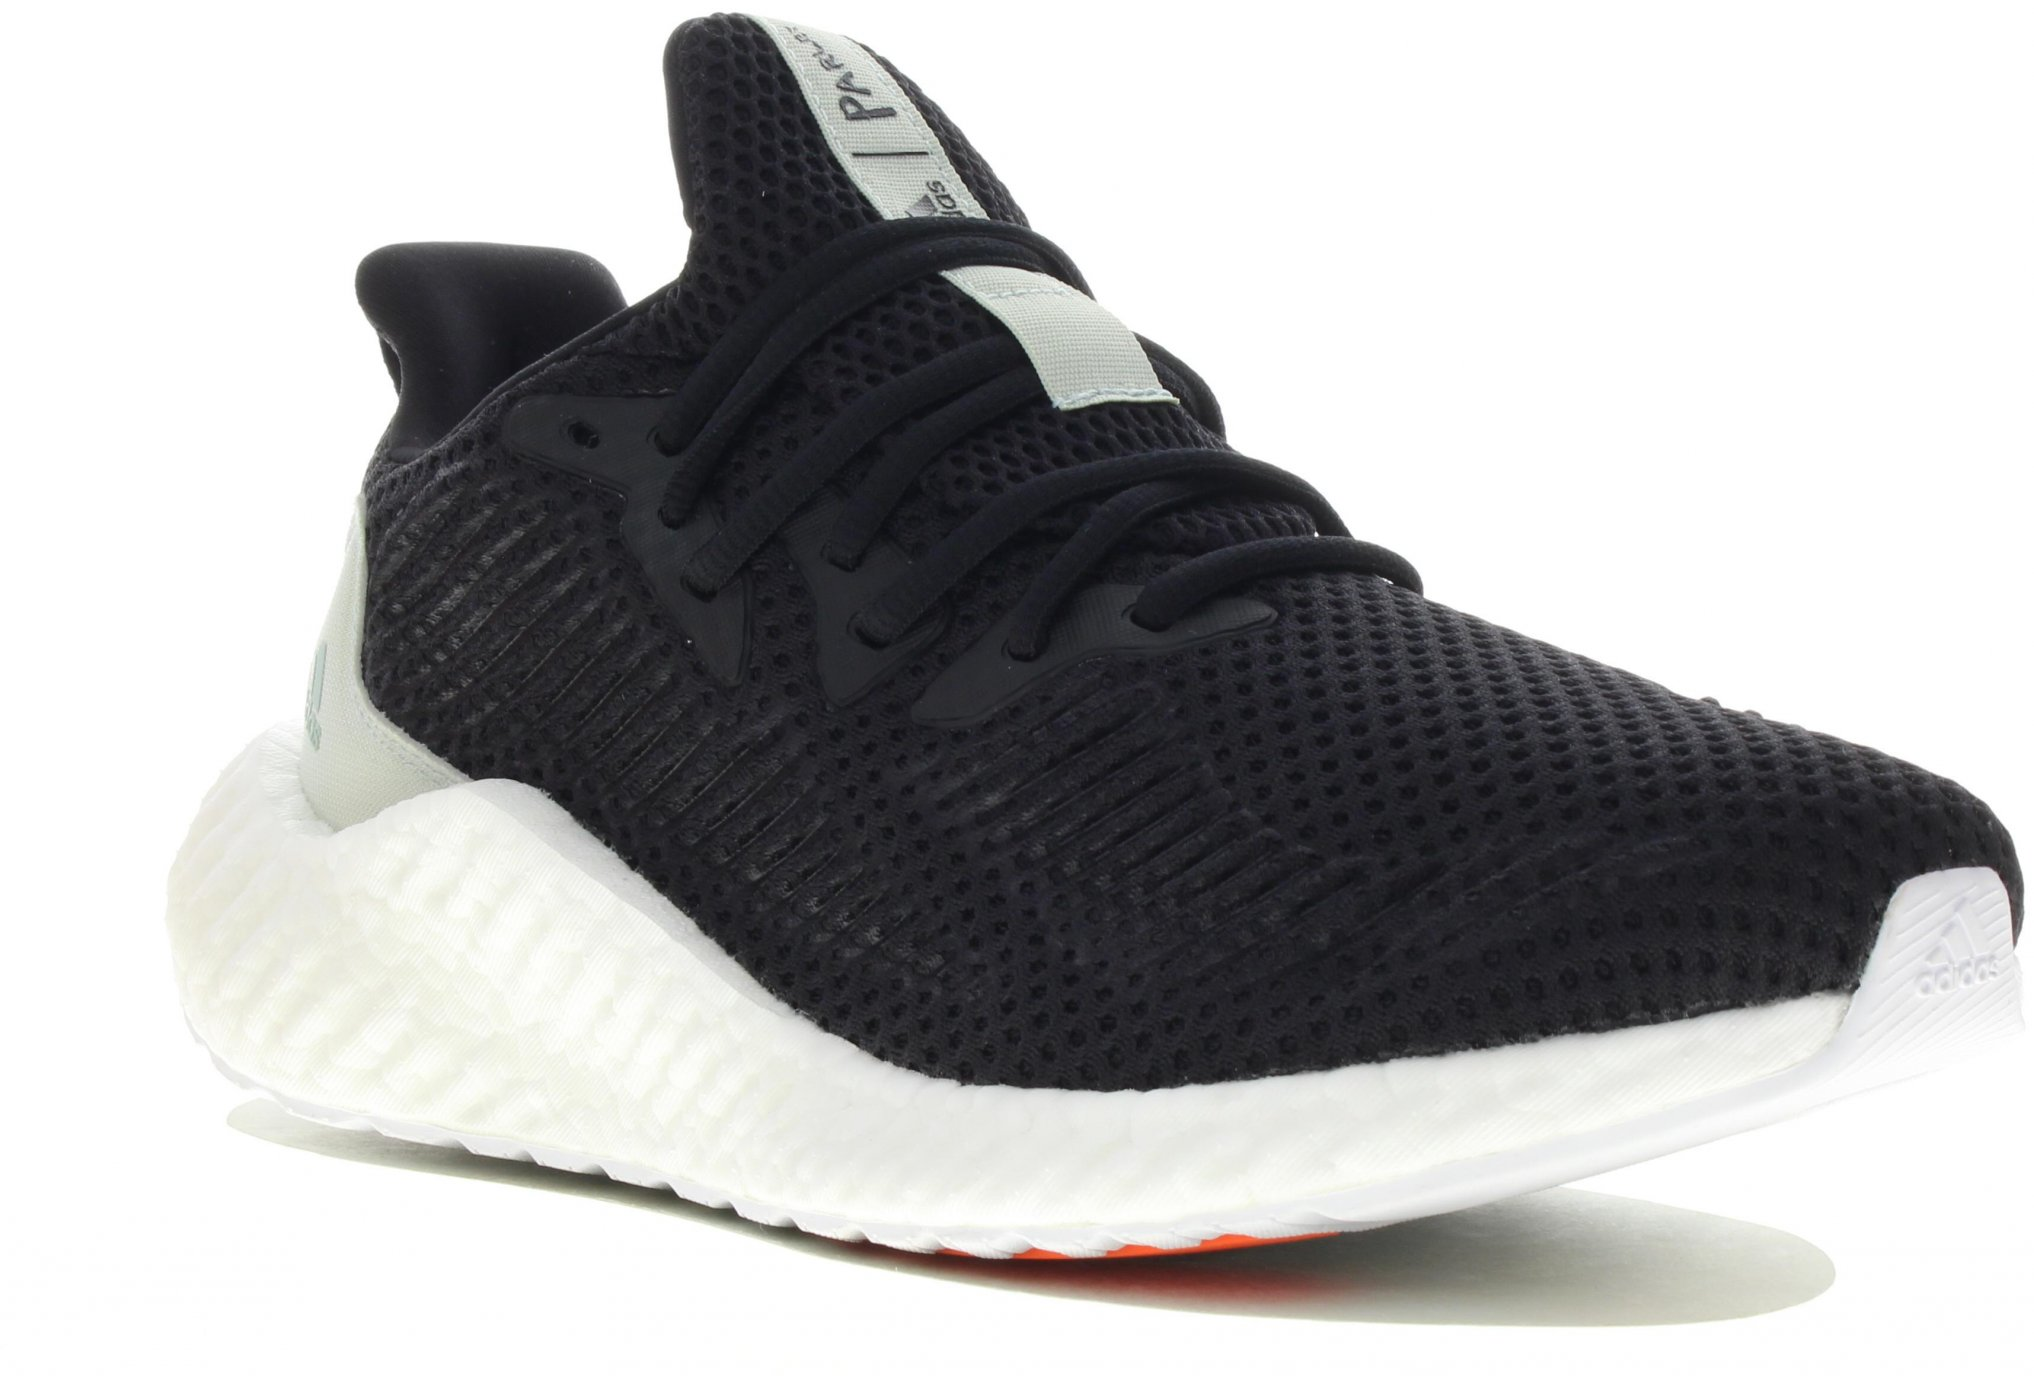 adidas Alphaboost Parley Chaussures homme